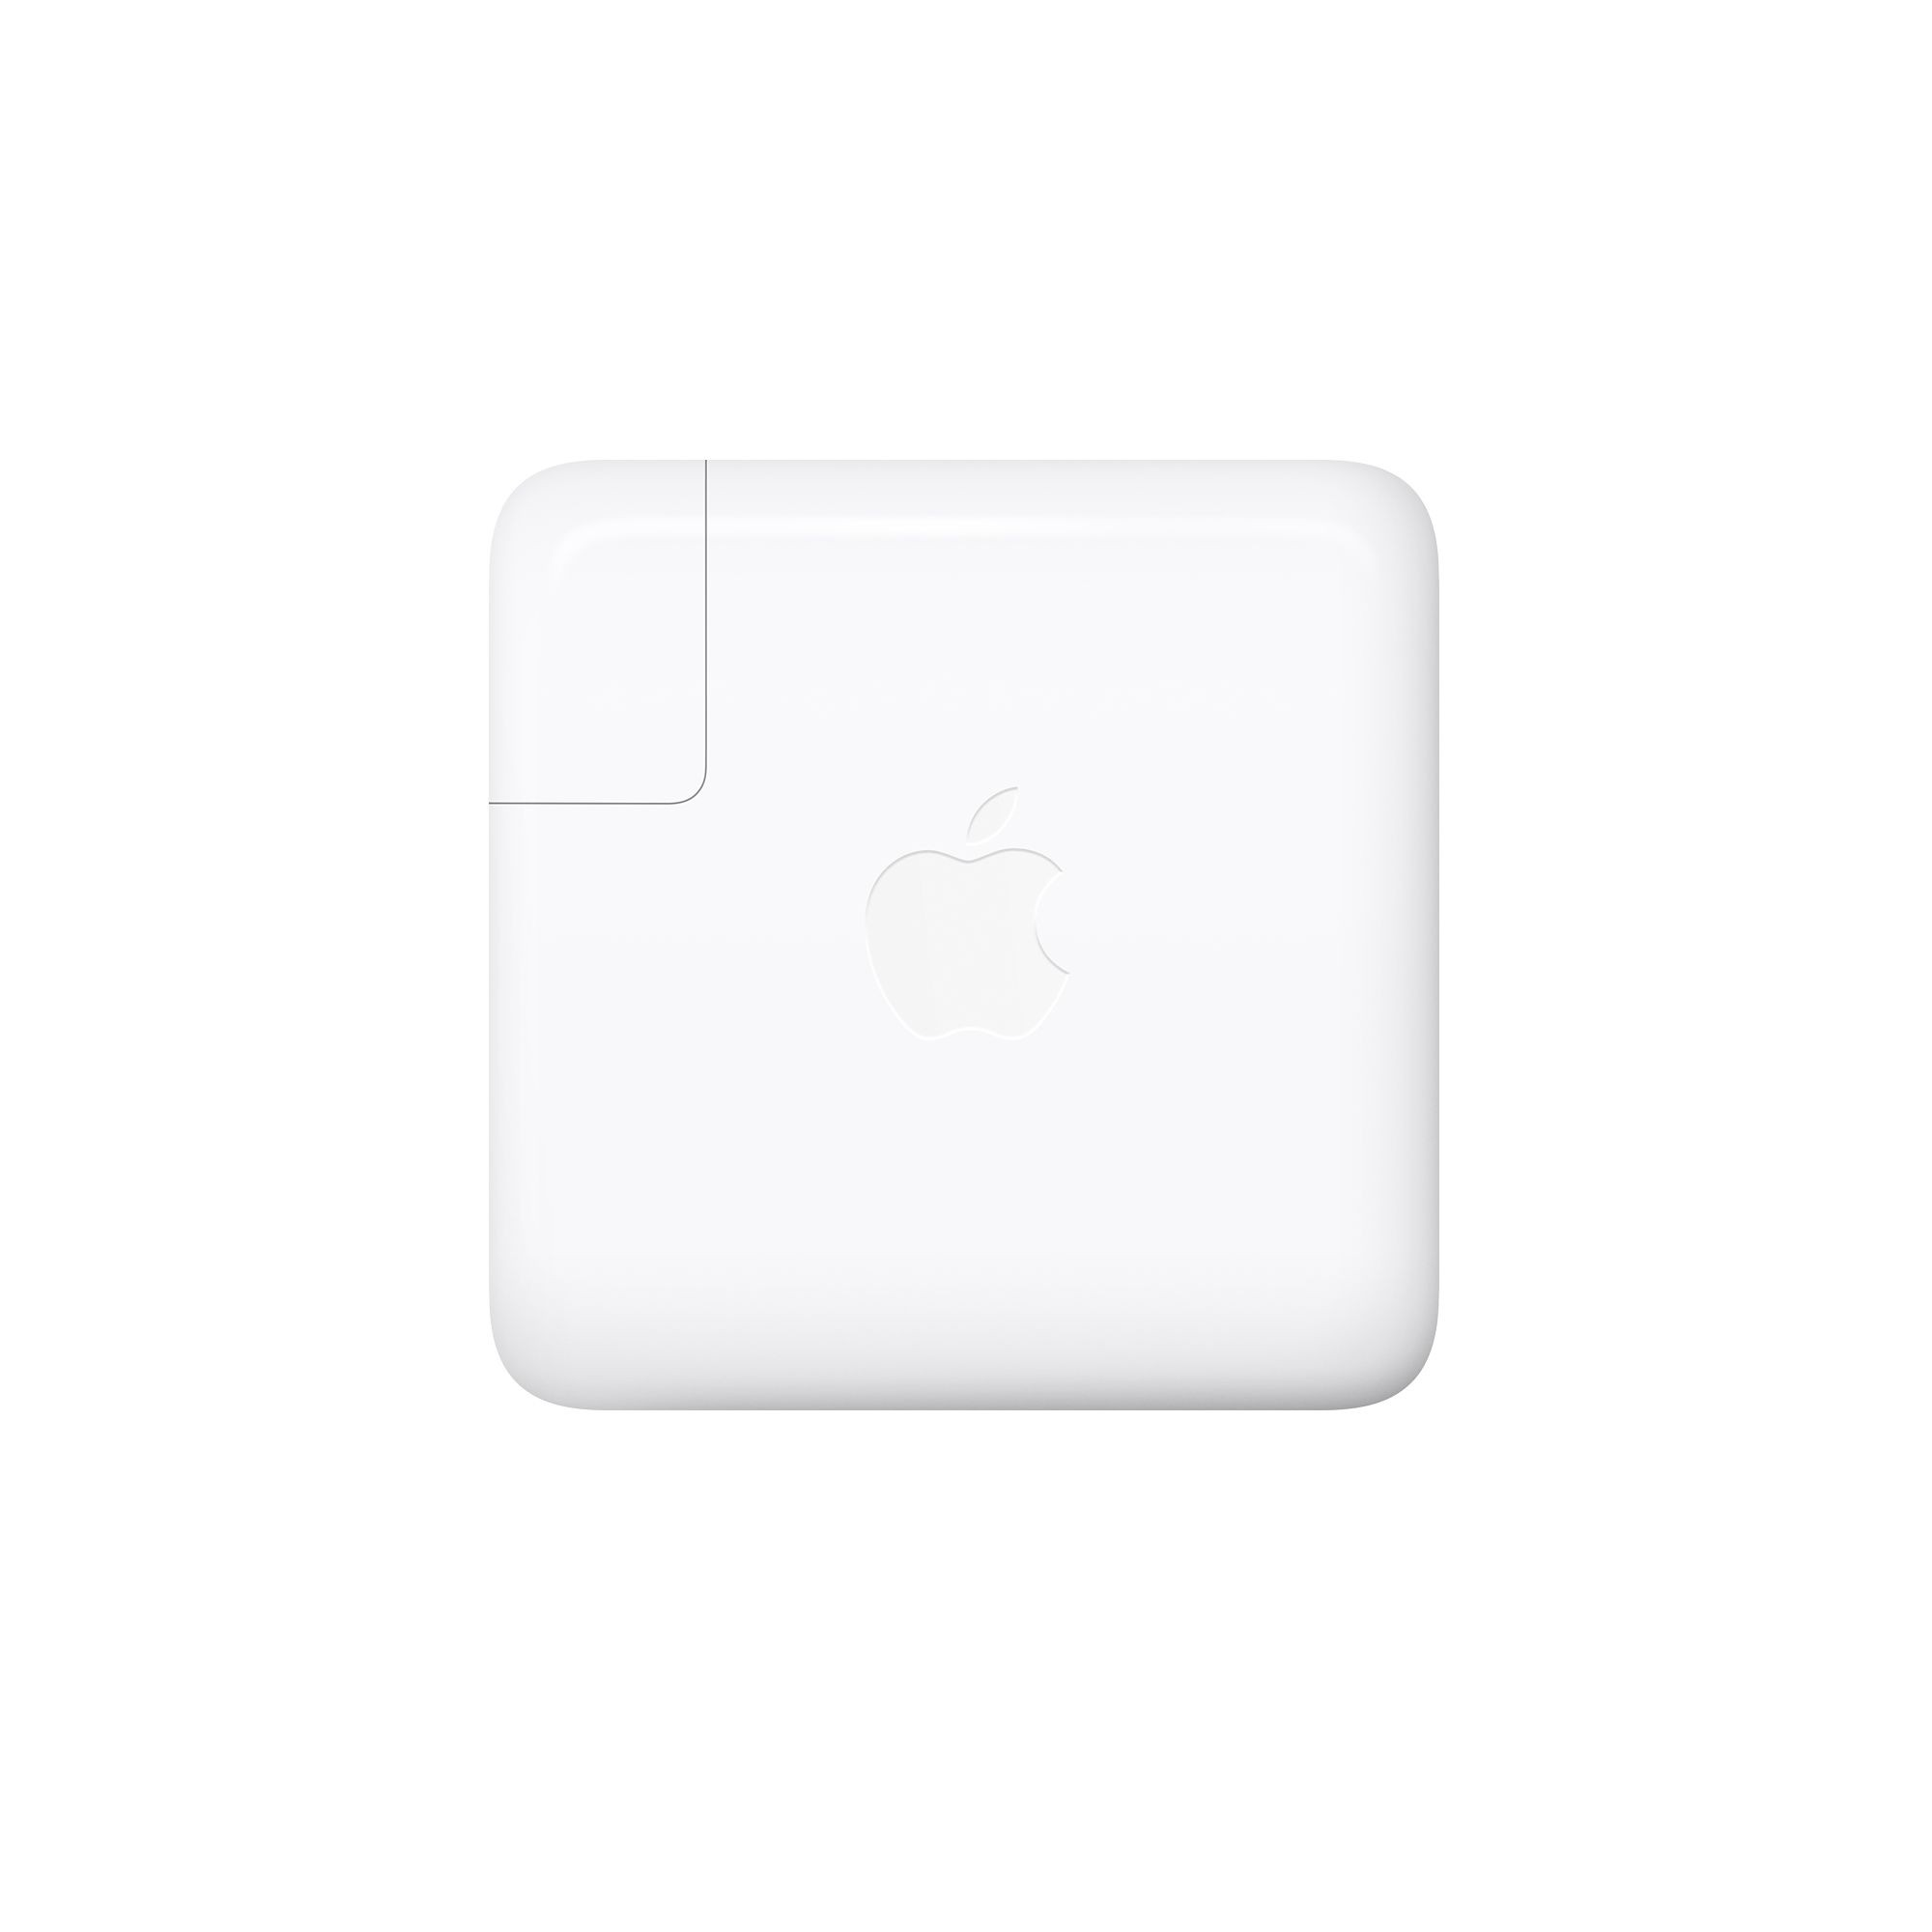 "Apple USB-C Power Adapter - 87W (MacBook Pro 15"" Retina s Touch Bar)"